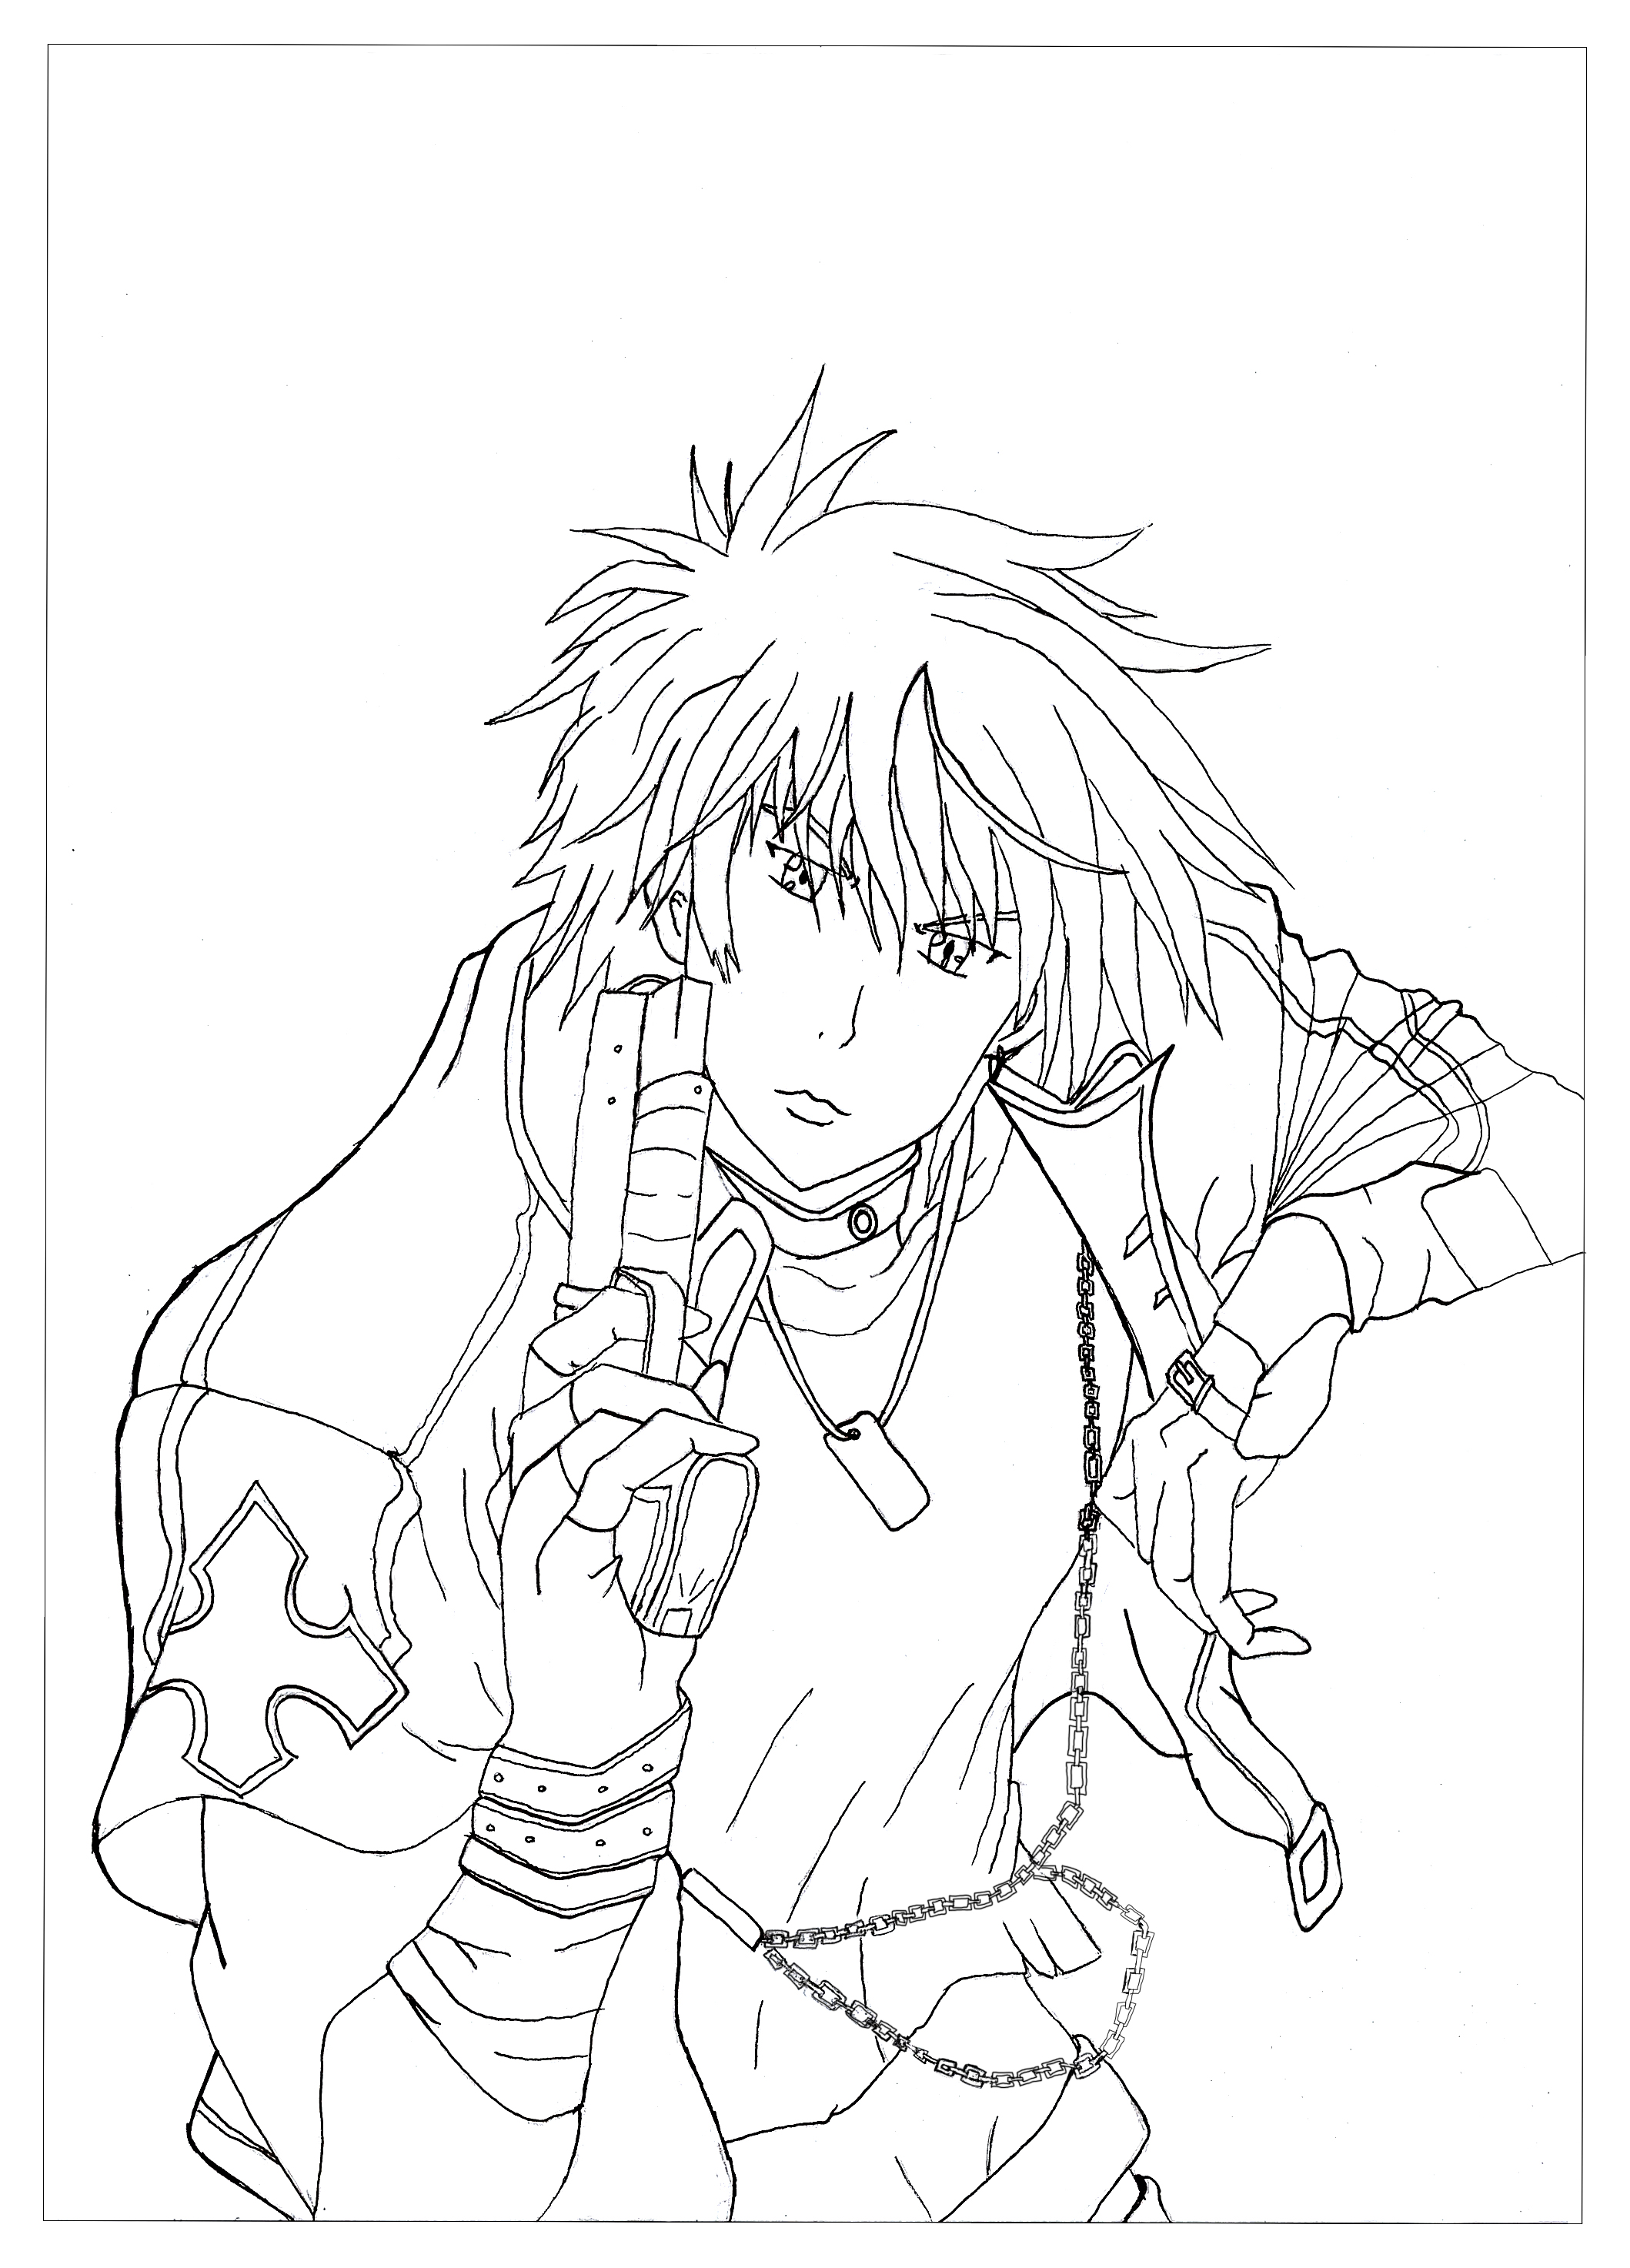 Here Is A Coloring Page From Rayne. Heu0027s The Character Of The Manga Neo  Angelique Abyss. His Role Is To Purify The Evil Spirit With His Weapon.